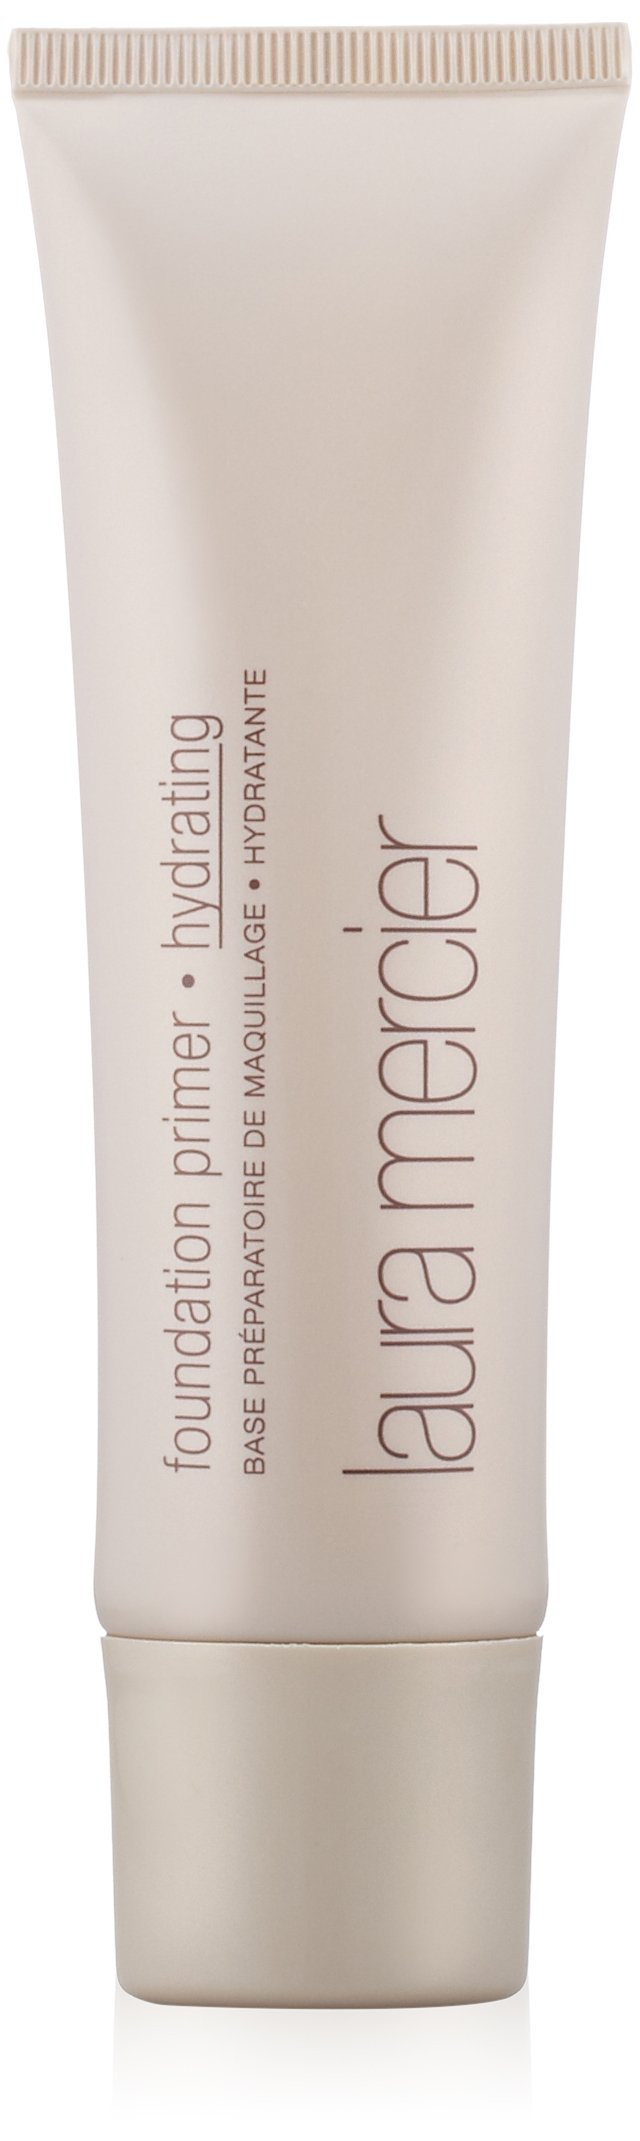 Laura Mercier Foundation Primer, Hydrating, 1.7 Ounce